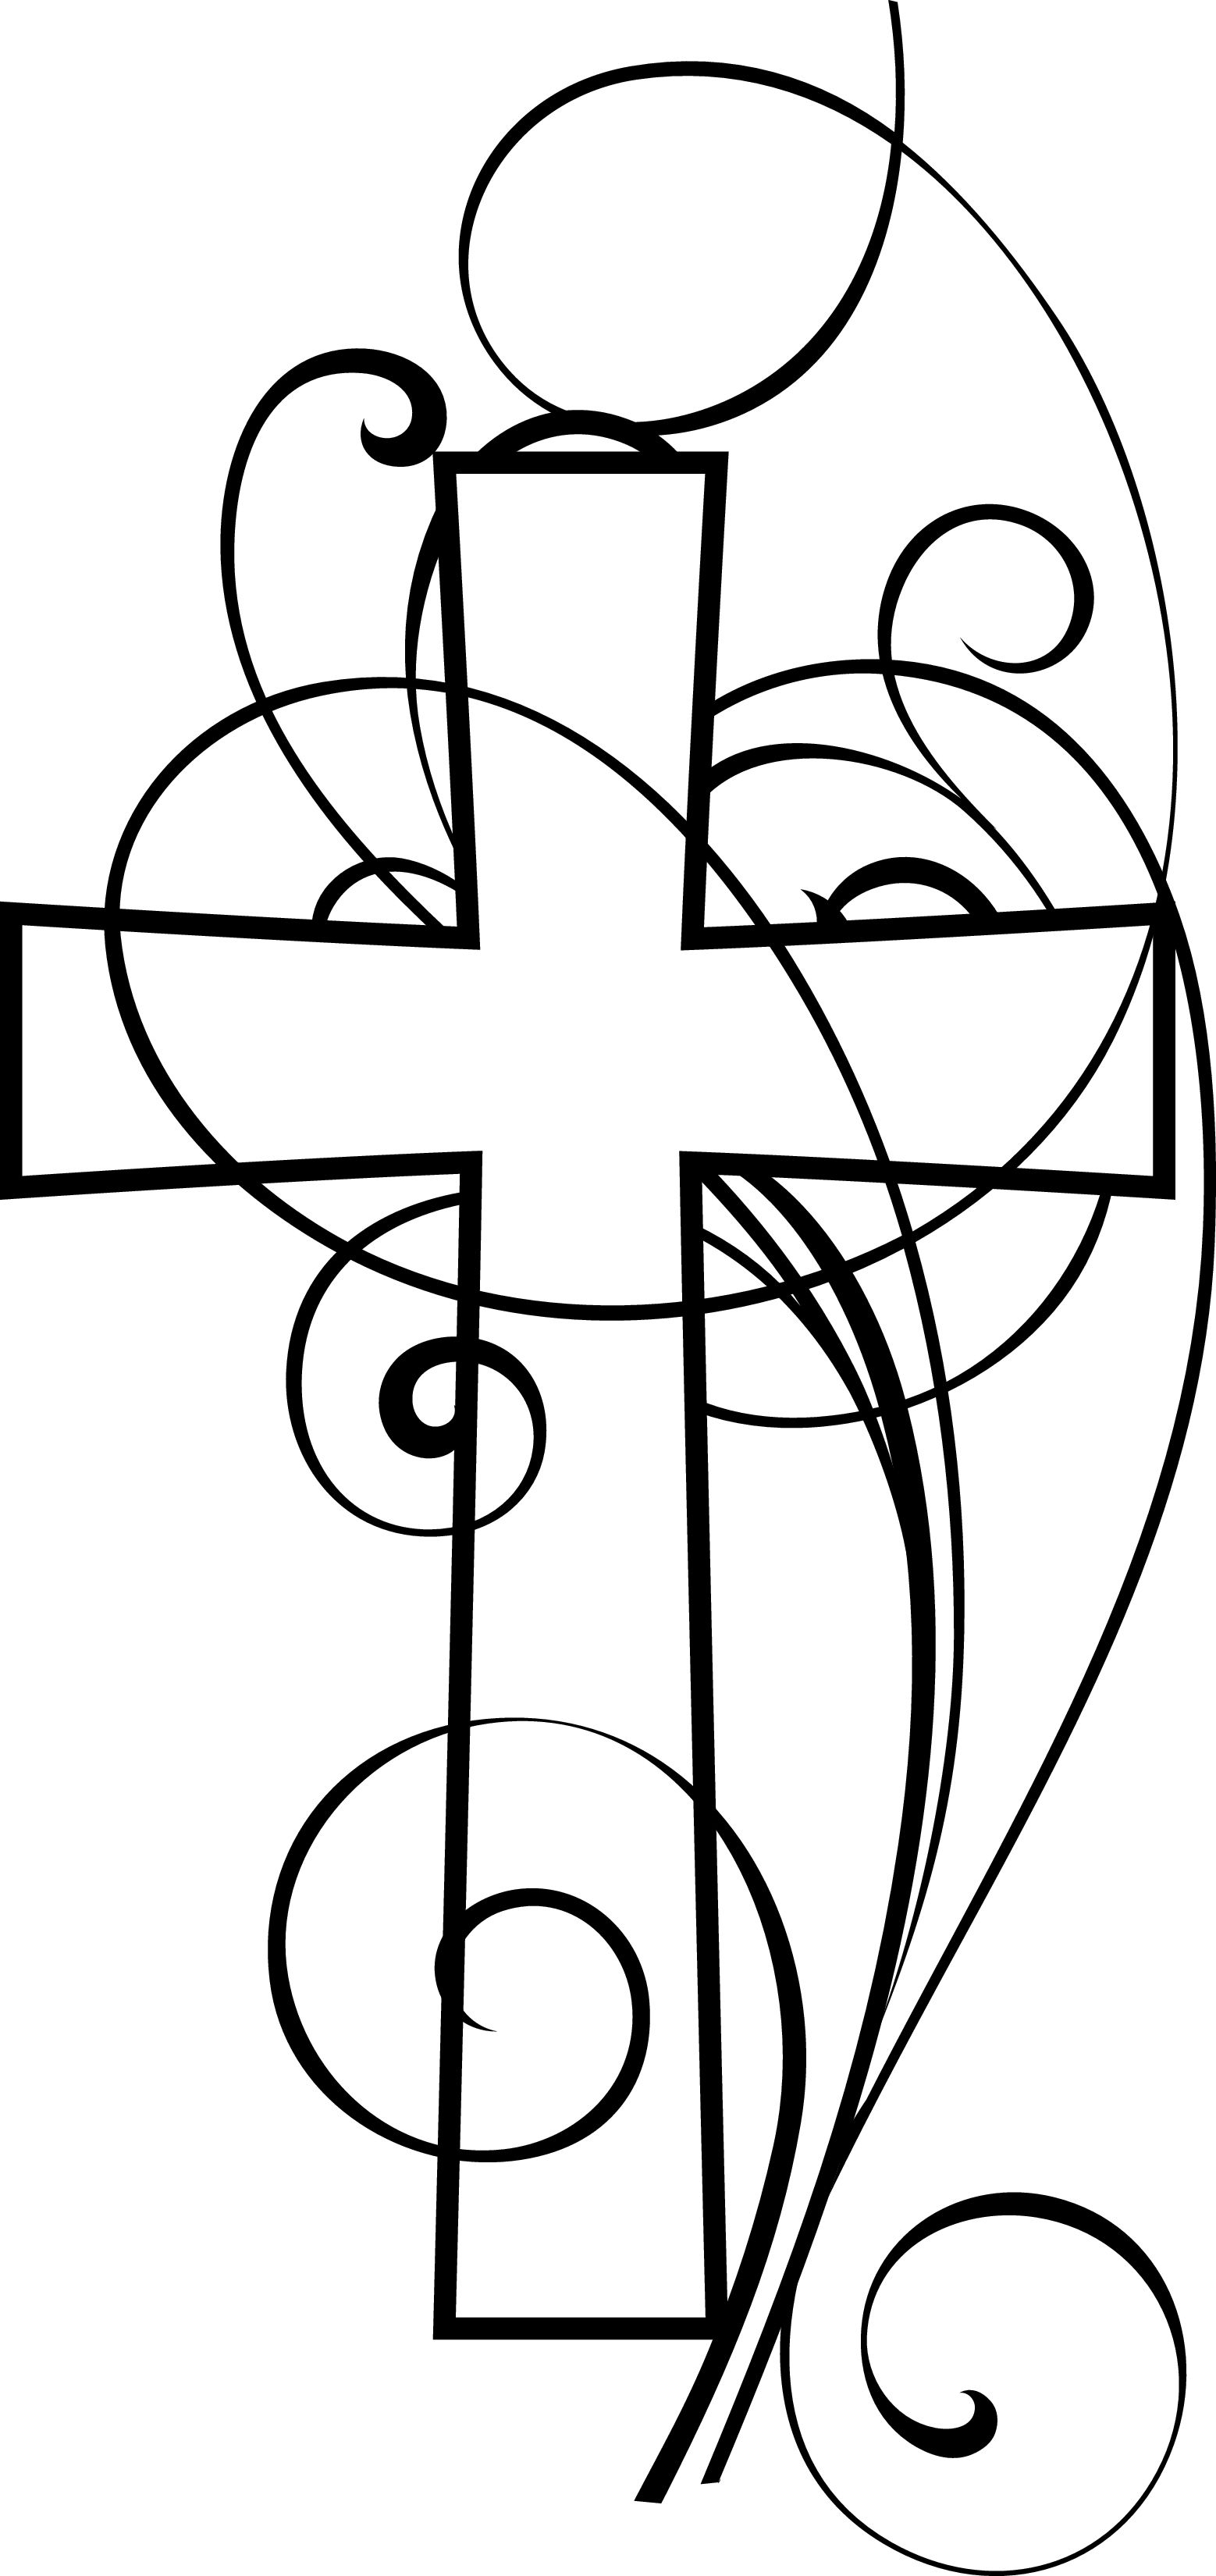 Cross and bible black and white clipart clipart black and white download cross clipart - Google Search | Bible Teaching Resources | Cross ... clipart black and white download